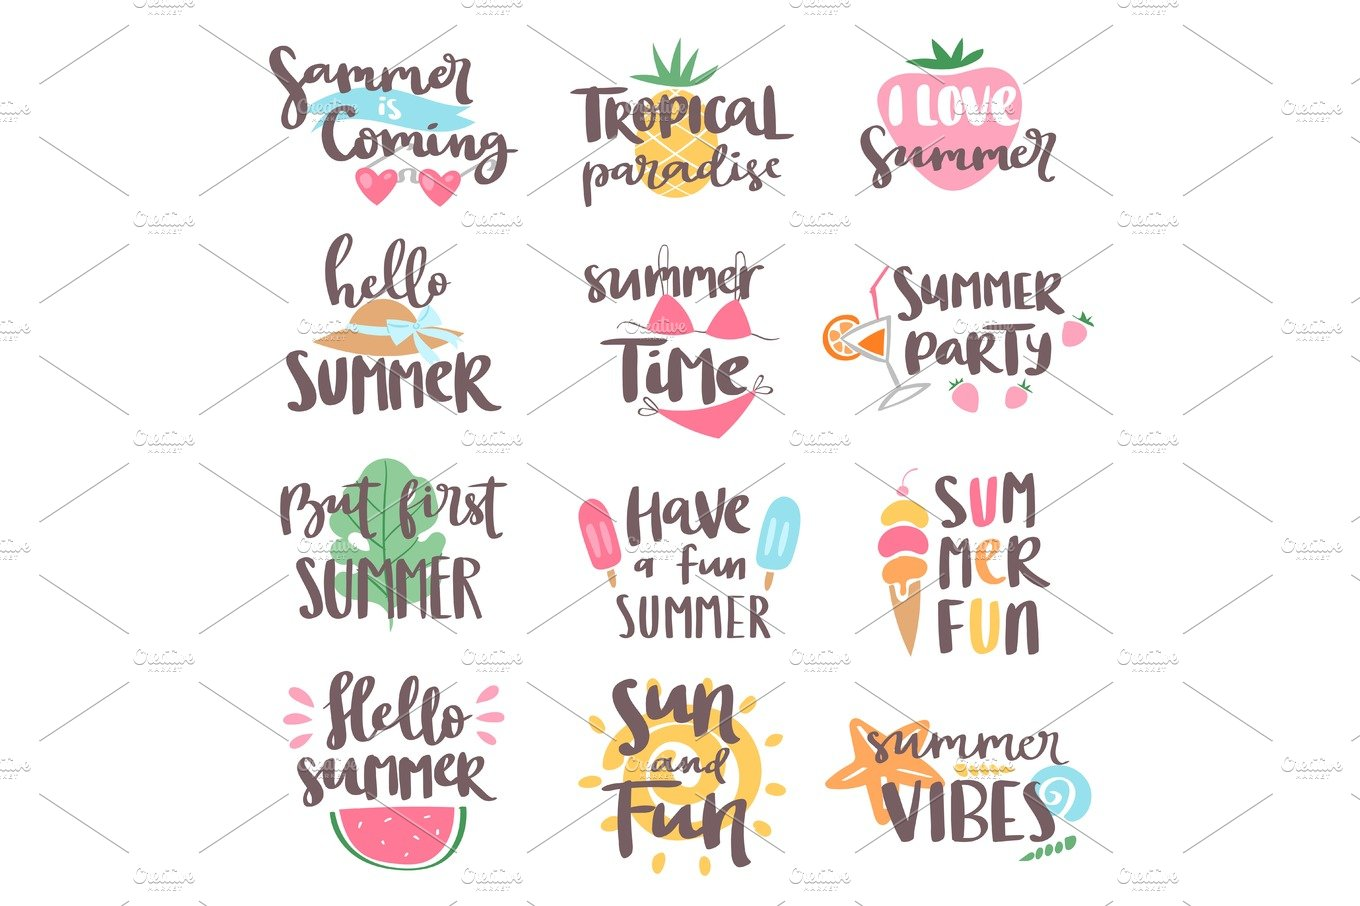 Summer Coming Time Lettering Text Typography Art Hand Drawn Nature